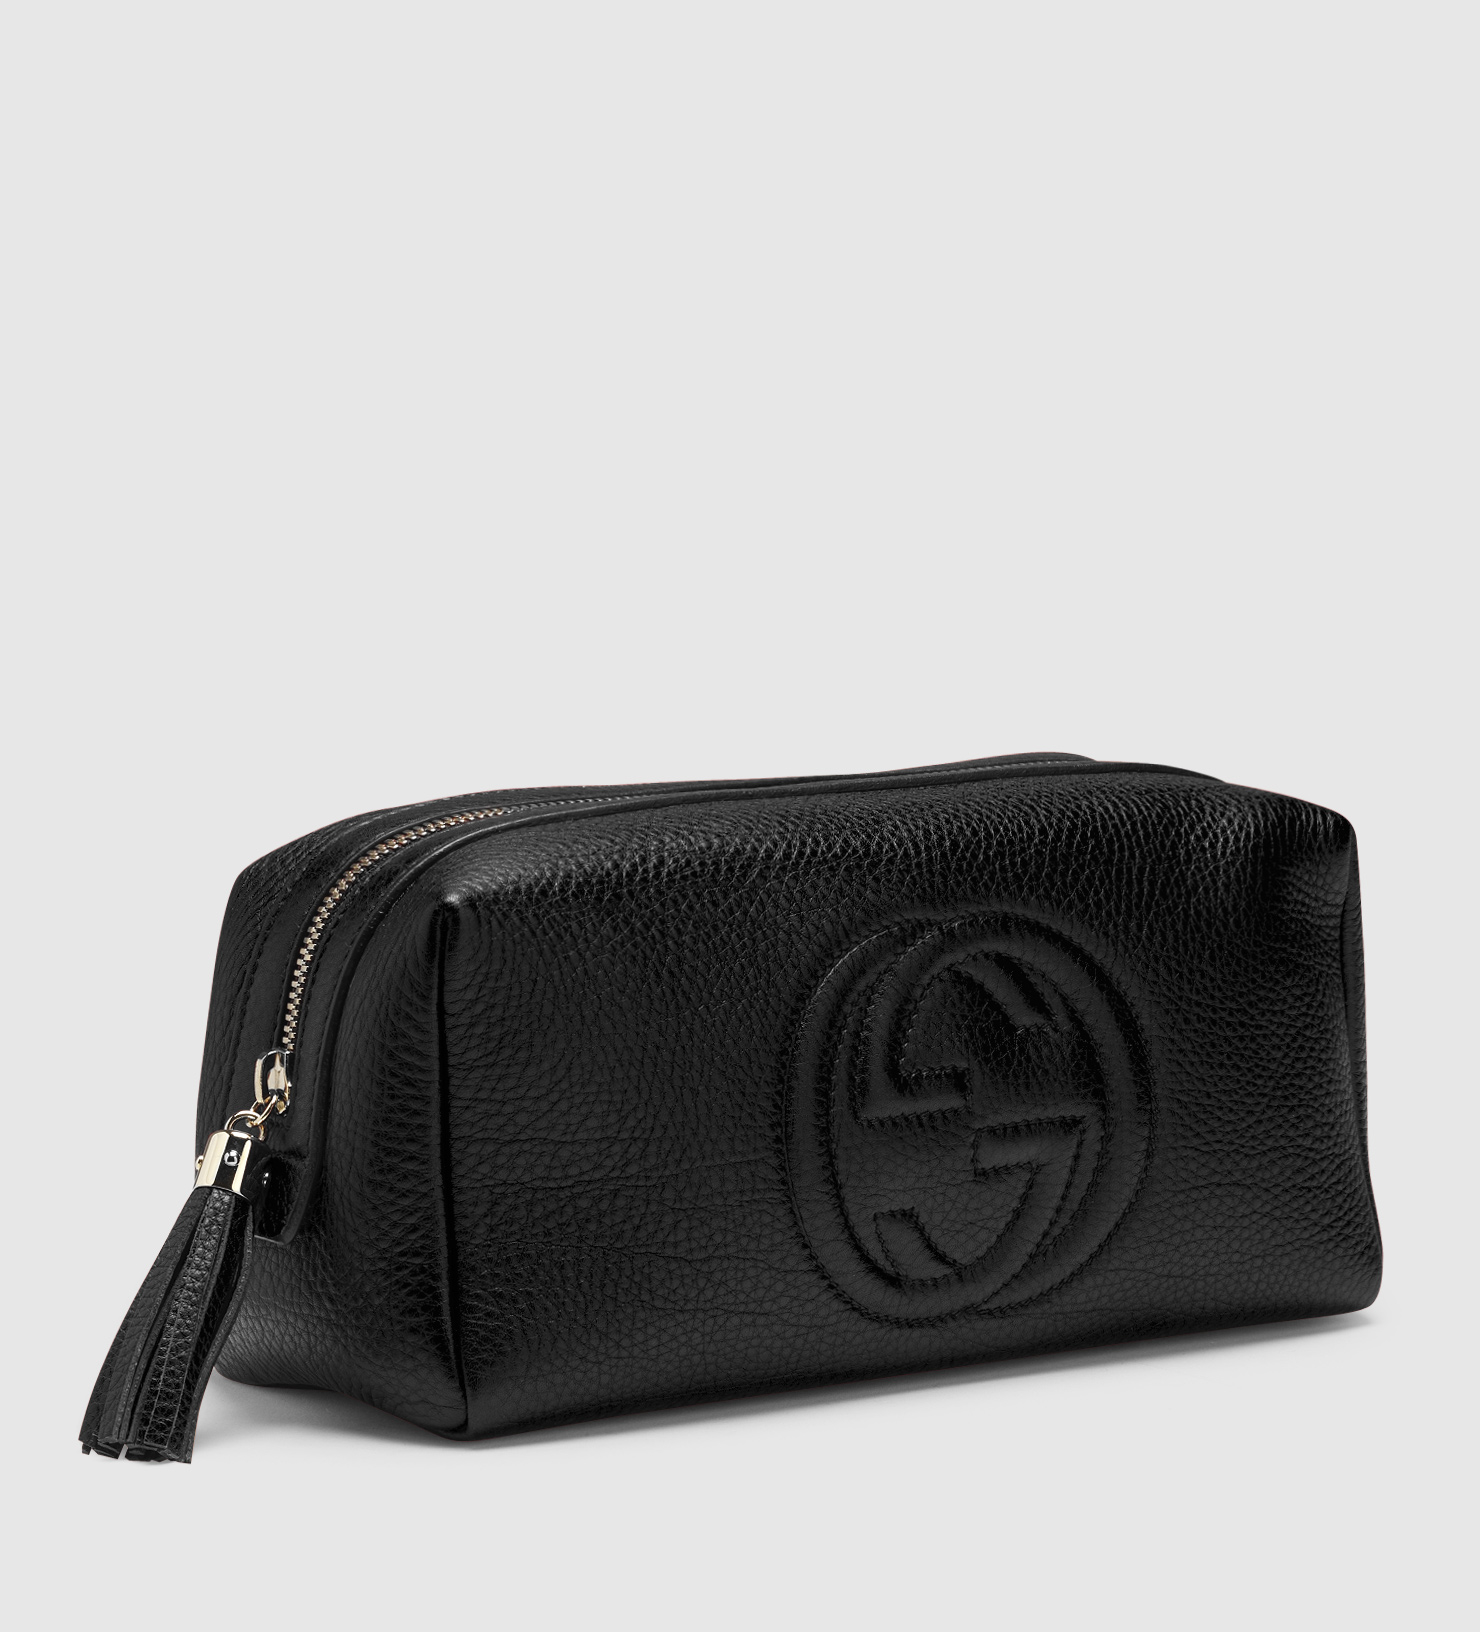 7c9bc6f59f94ba Gucci Cosmetic Bag Black Leather | Stanford Center for Opportunity ...